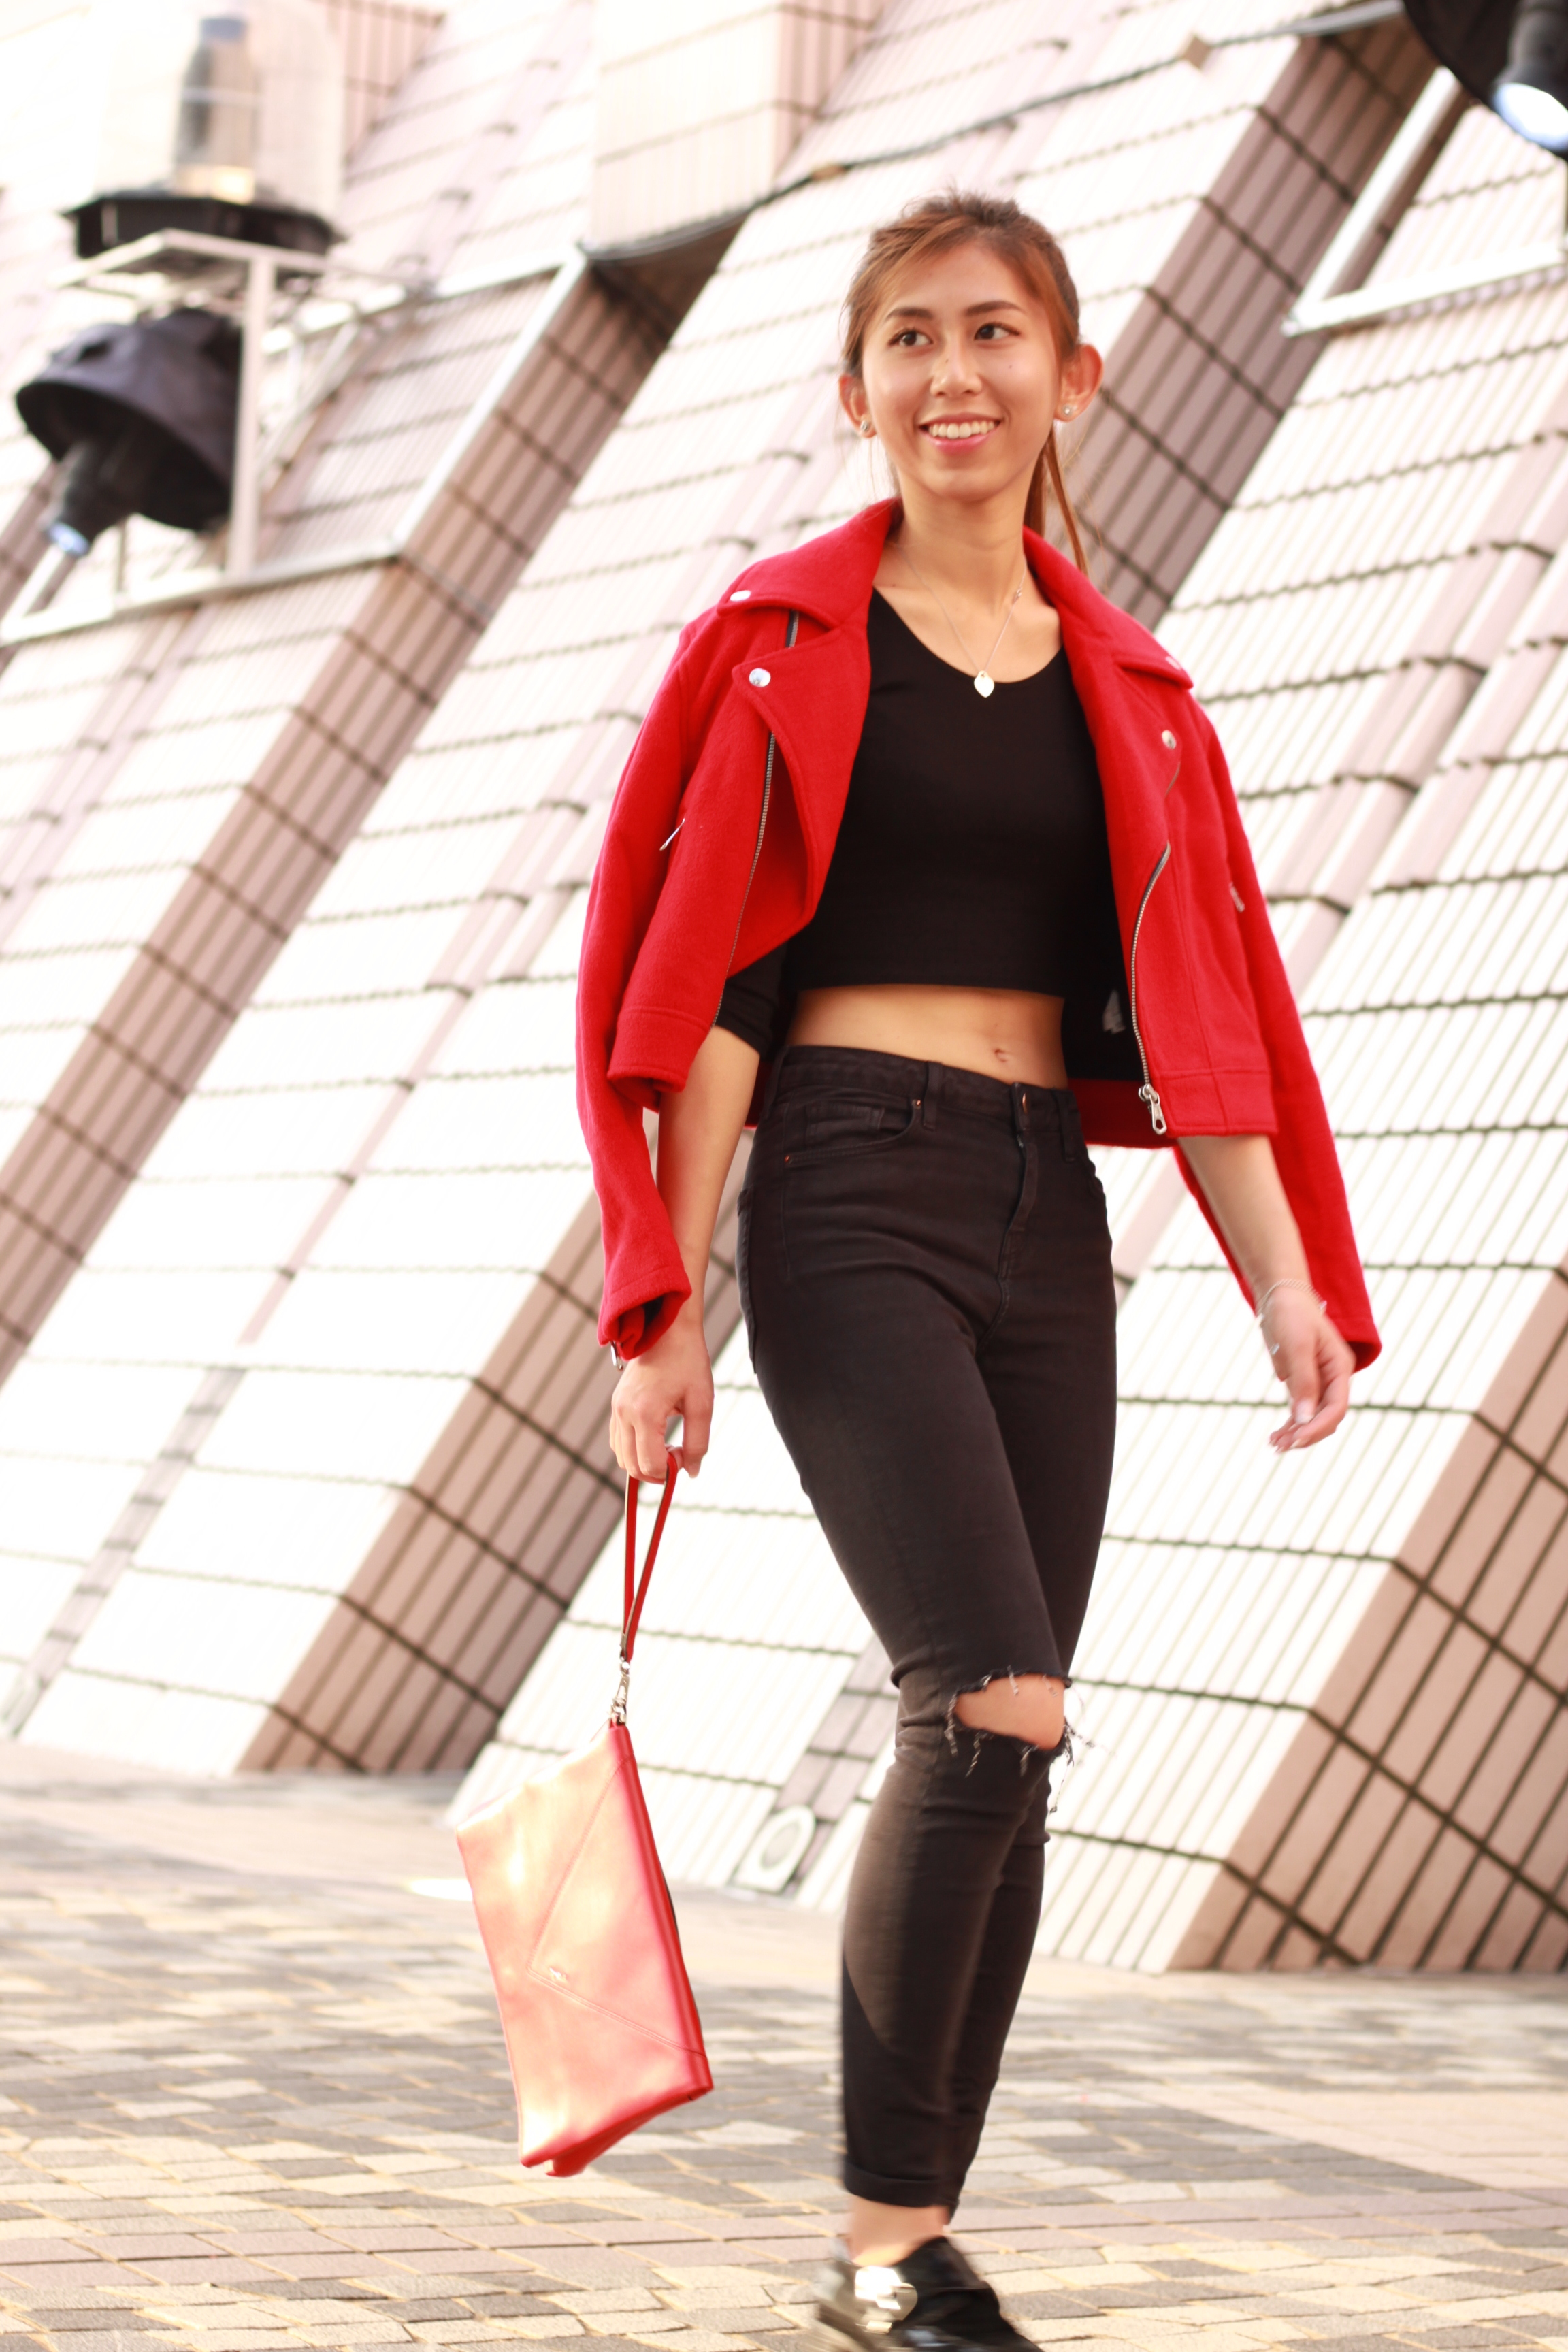 b+ab red biker jacket / Topshop ripped jeans / Topshop cropped top / Vanishing Elephant black loafers / Agnes b. red clutch